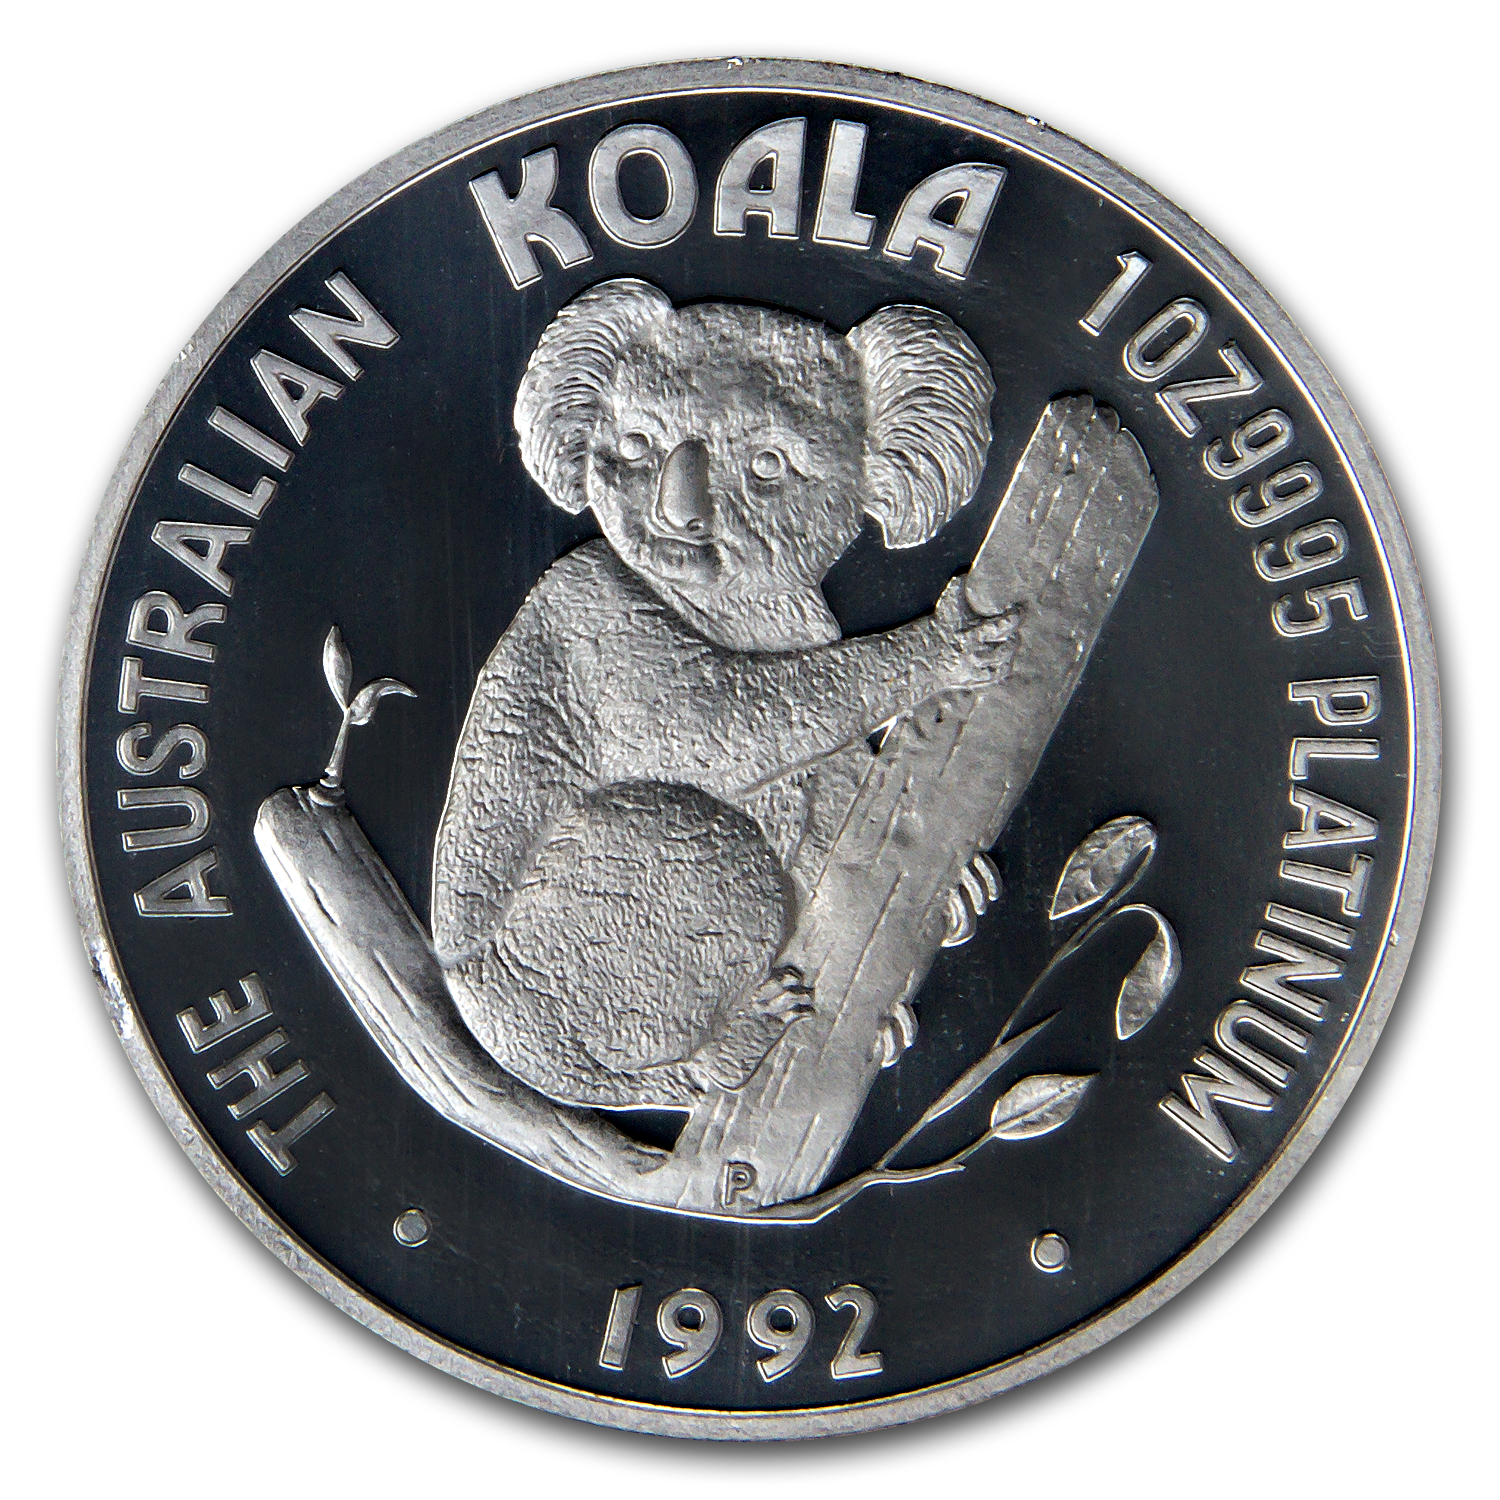 1992 Australia 1 oz Proof Platinum Koala PF-69 NGC